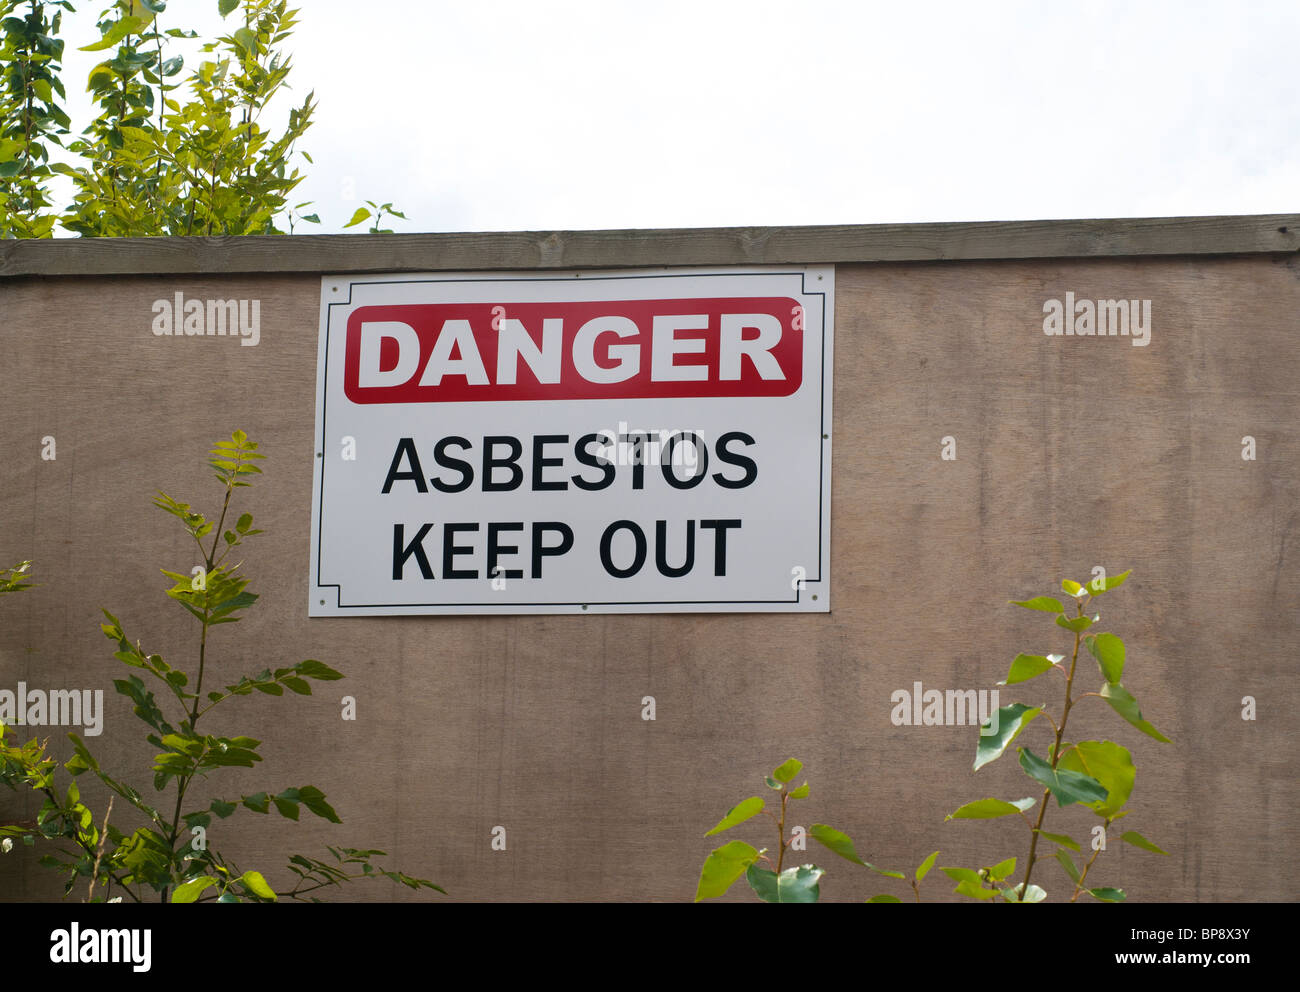 Danger Asbestos Keep Out Sign - Stock Image